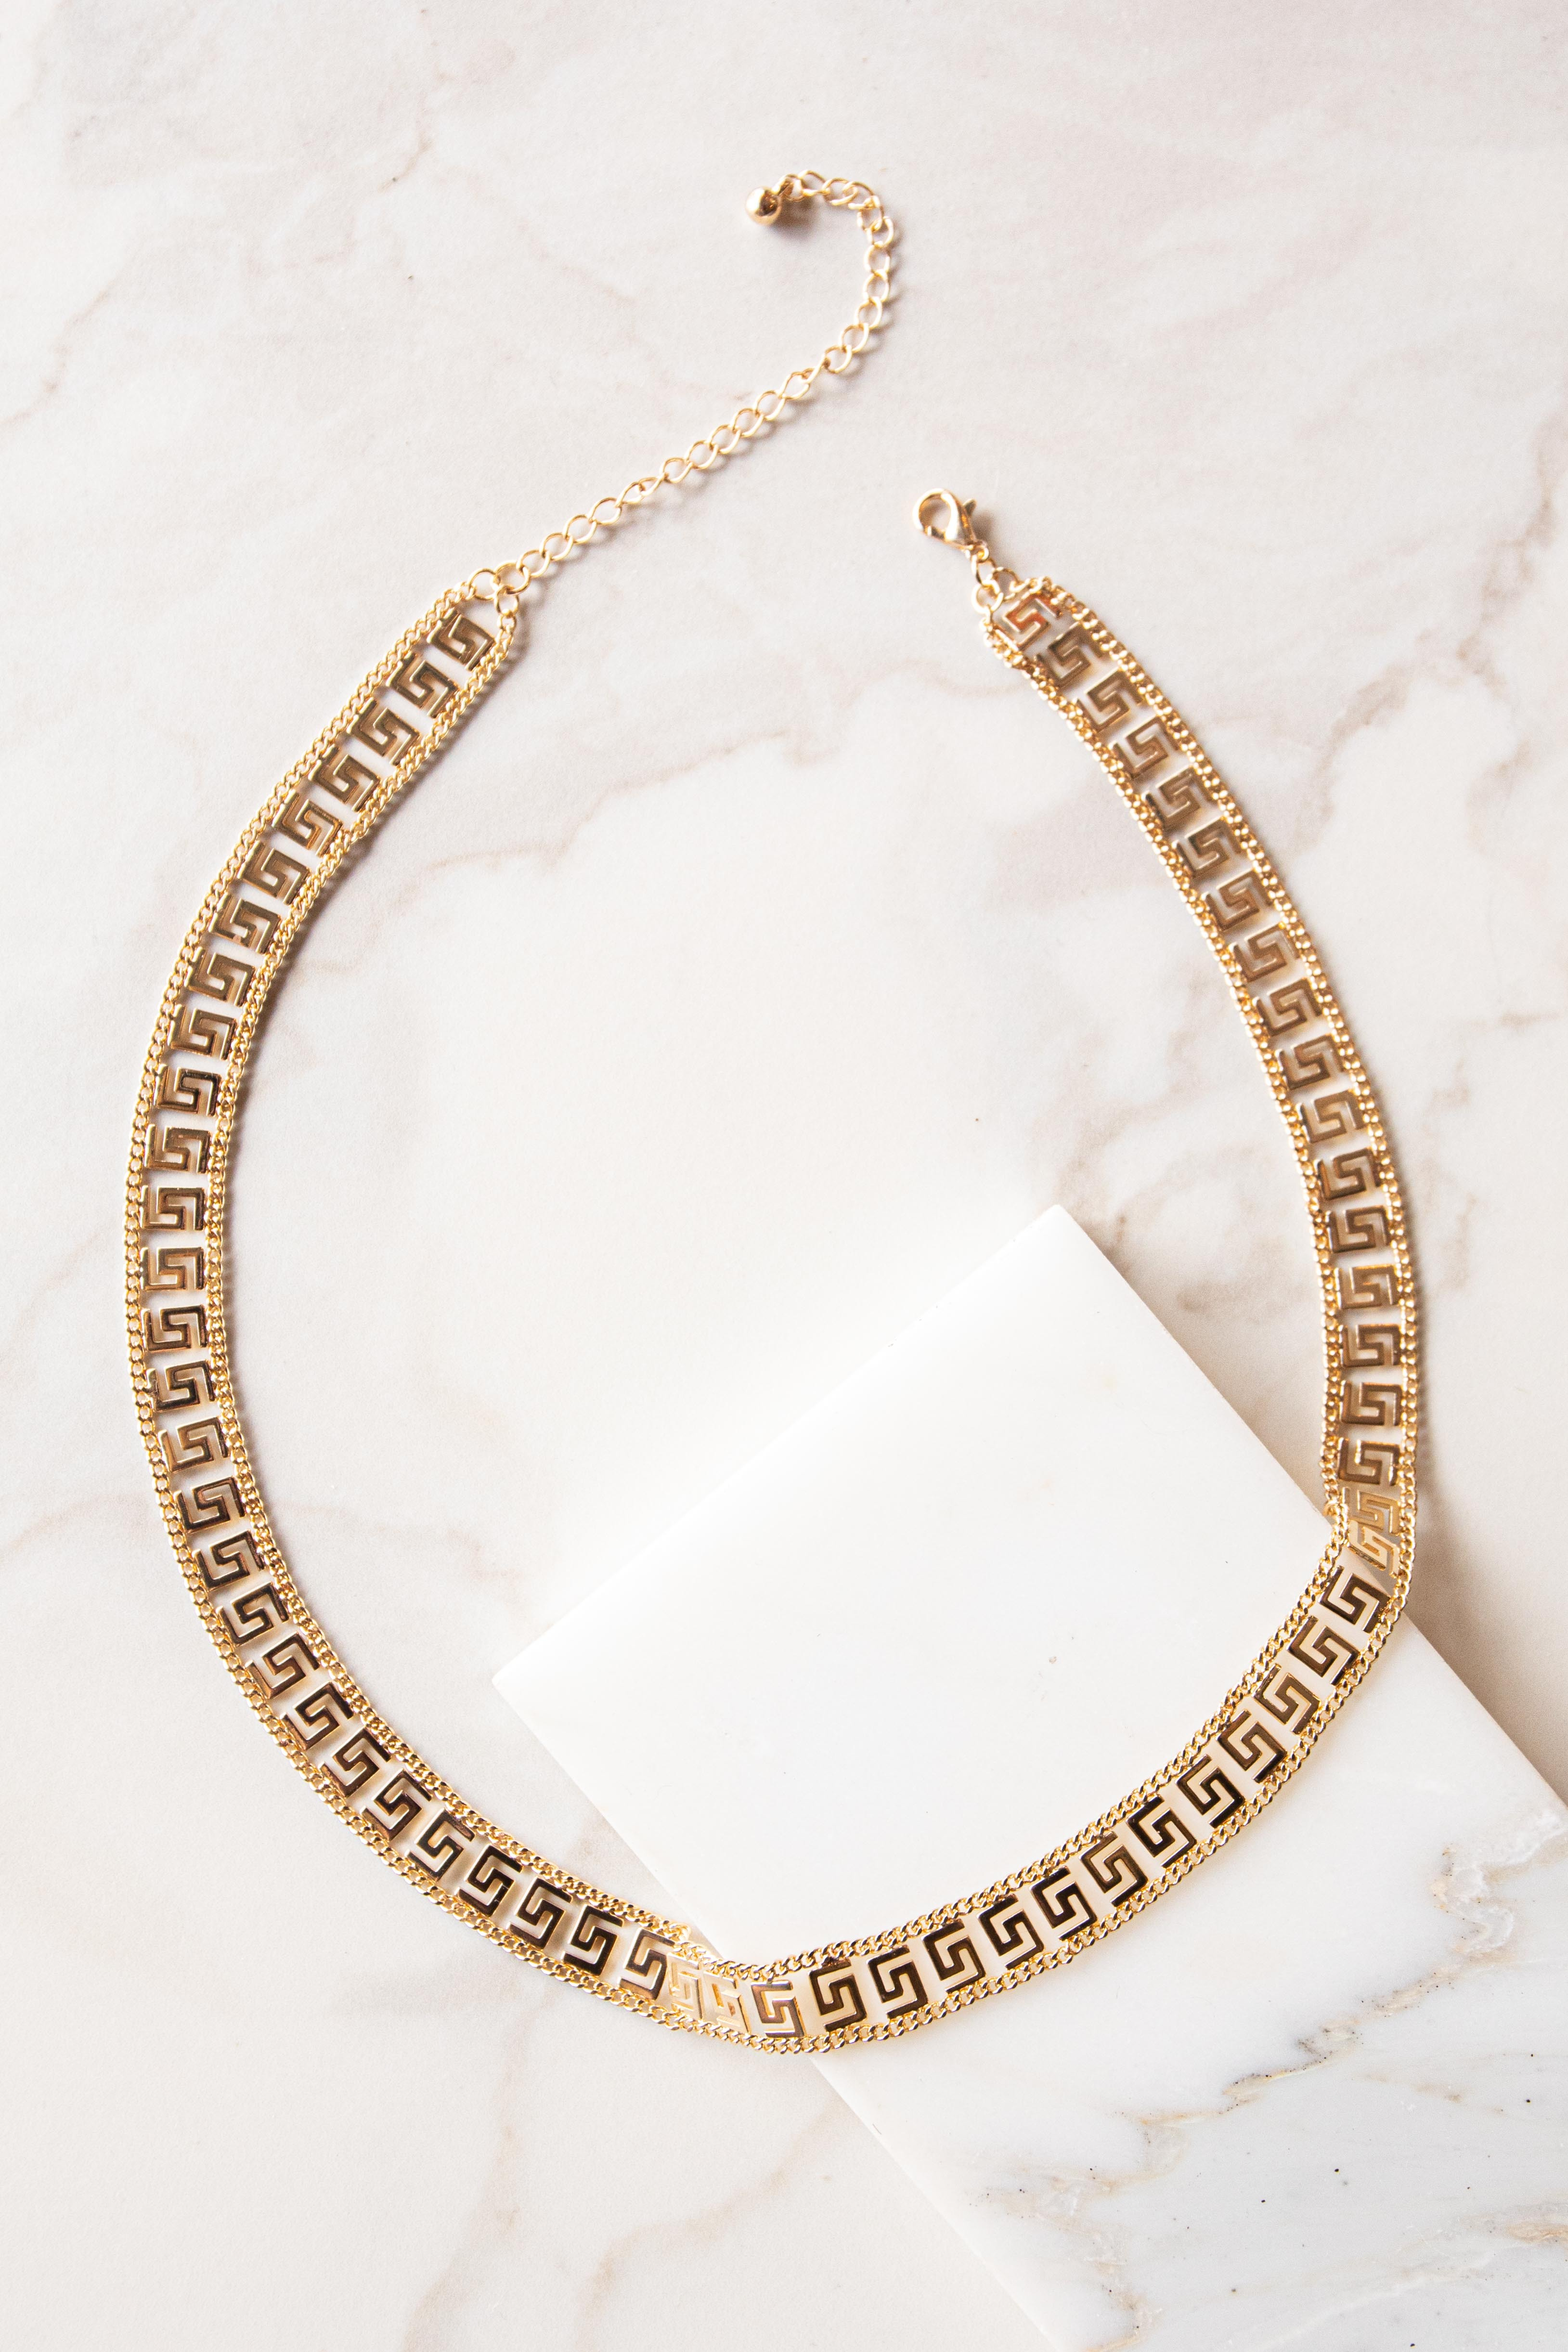 Gold Geometric Patterned Flat Necklace -_02021